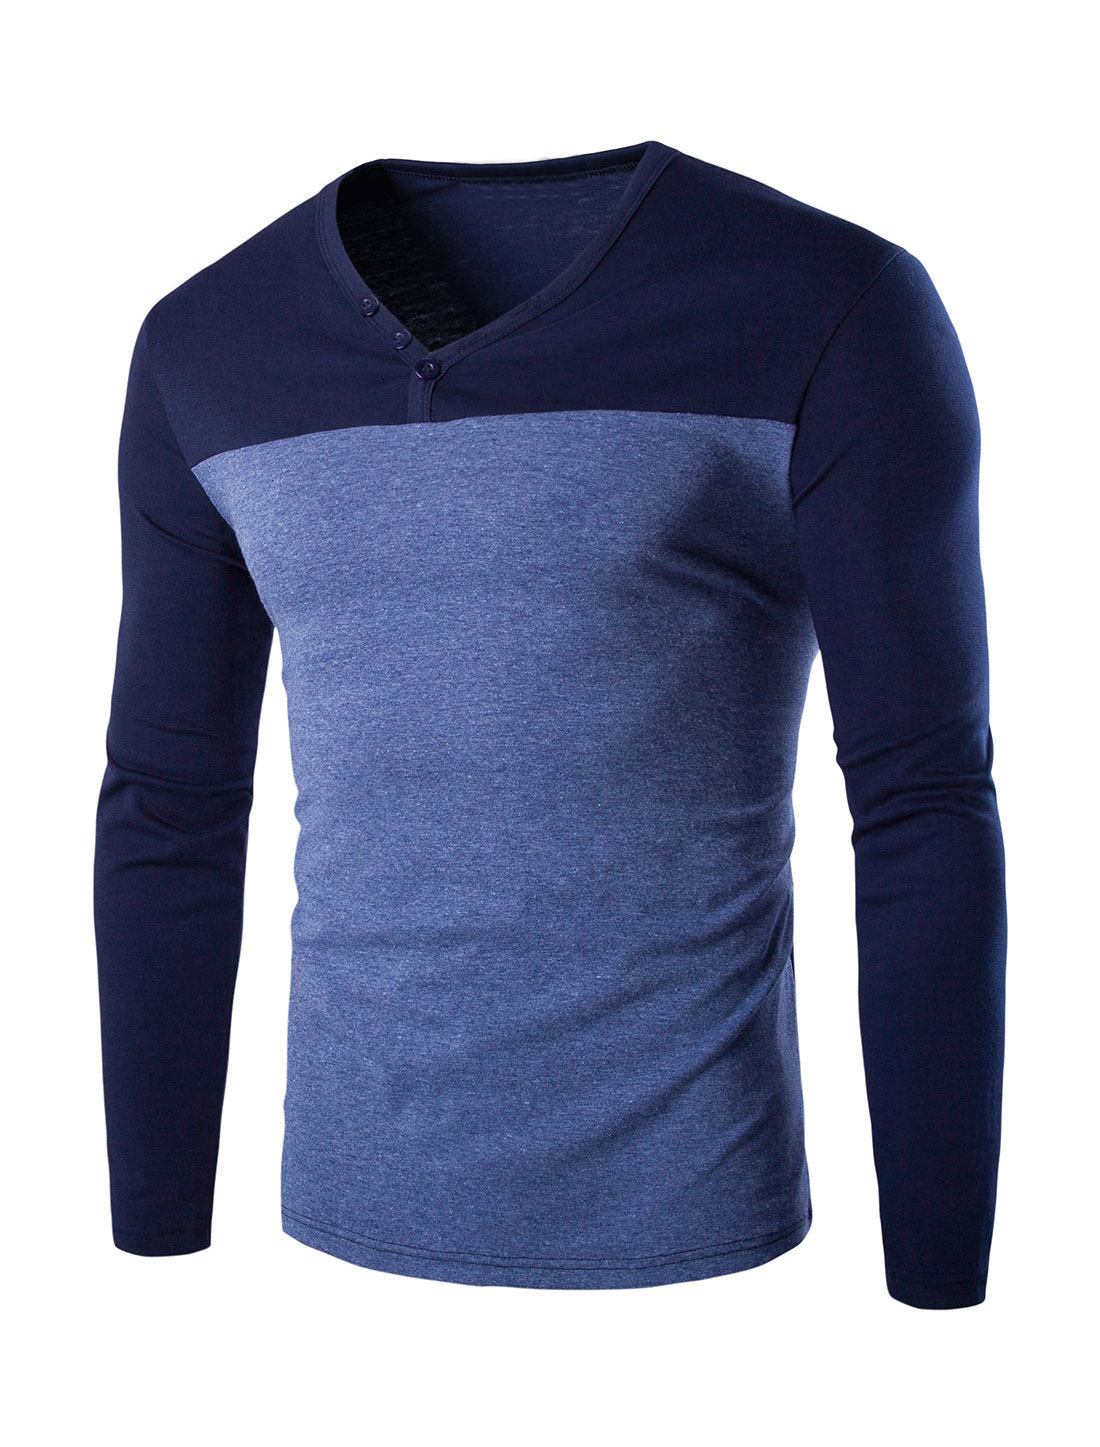 Men V-Neck Color Block Buttons Upper Long Sleeves T-shirt Blue S